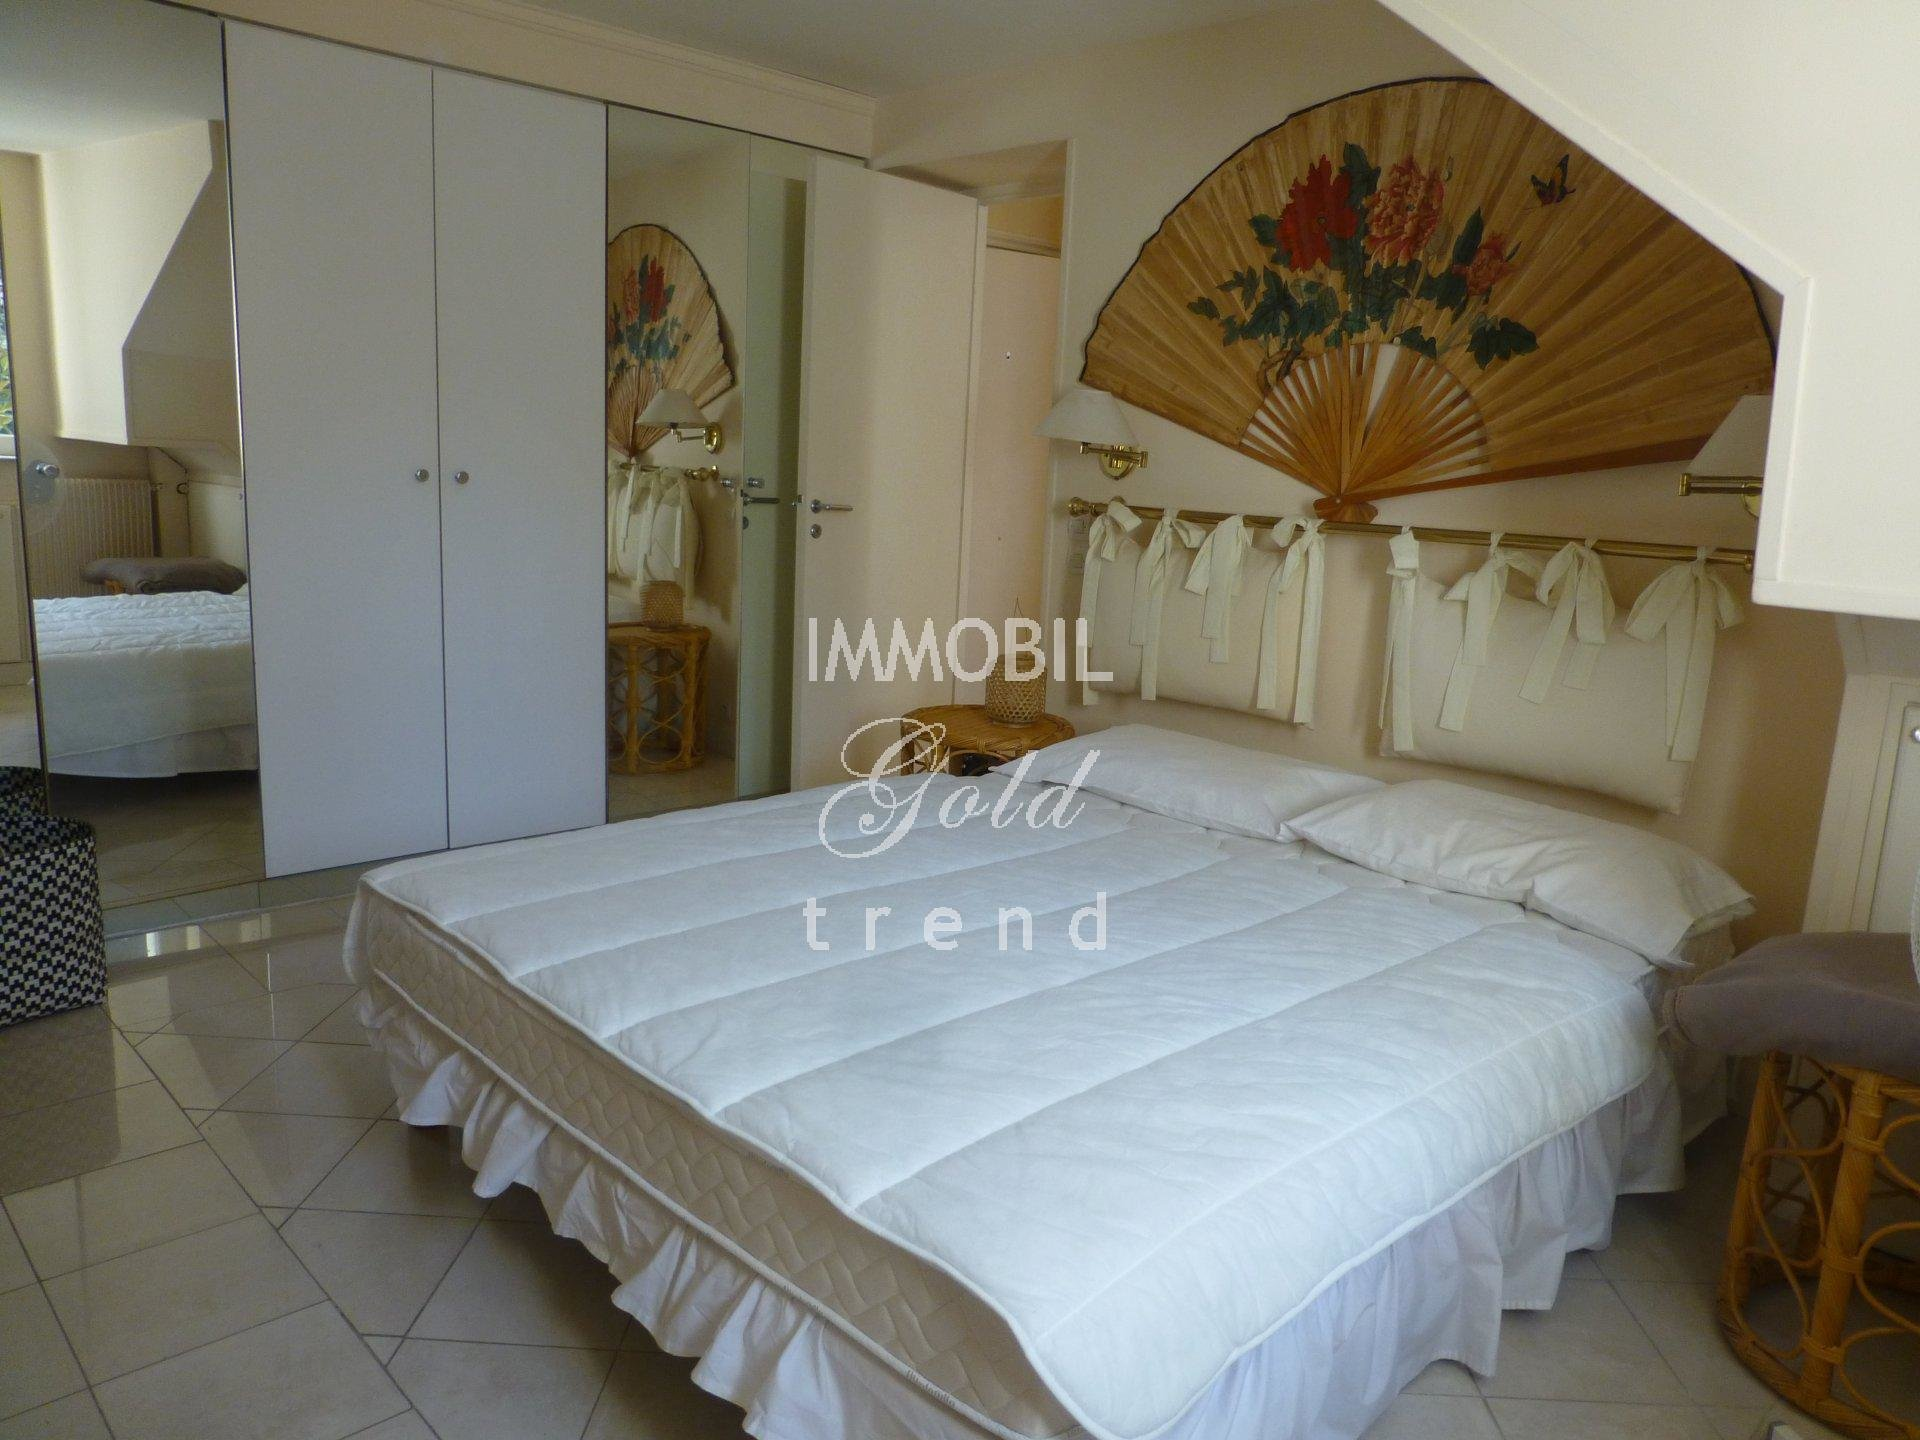 Real estate Roquebrune Cap Martin - For sale, two bedroom apartment situated in a prestigious building with park and swimming pool